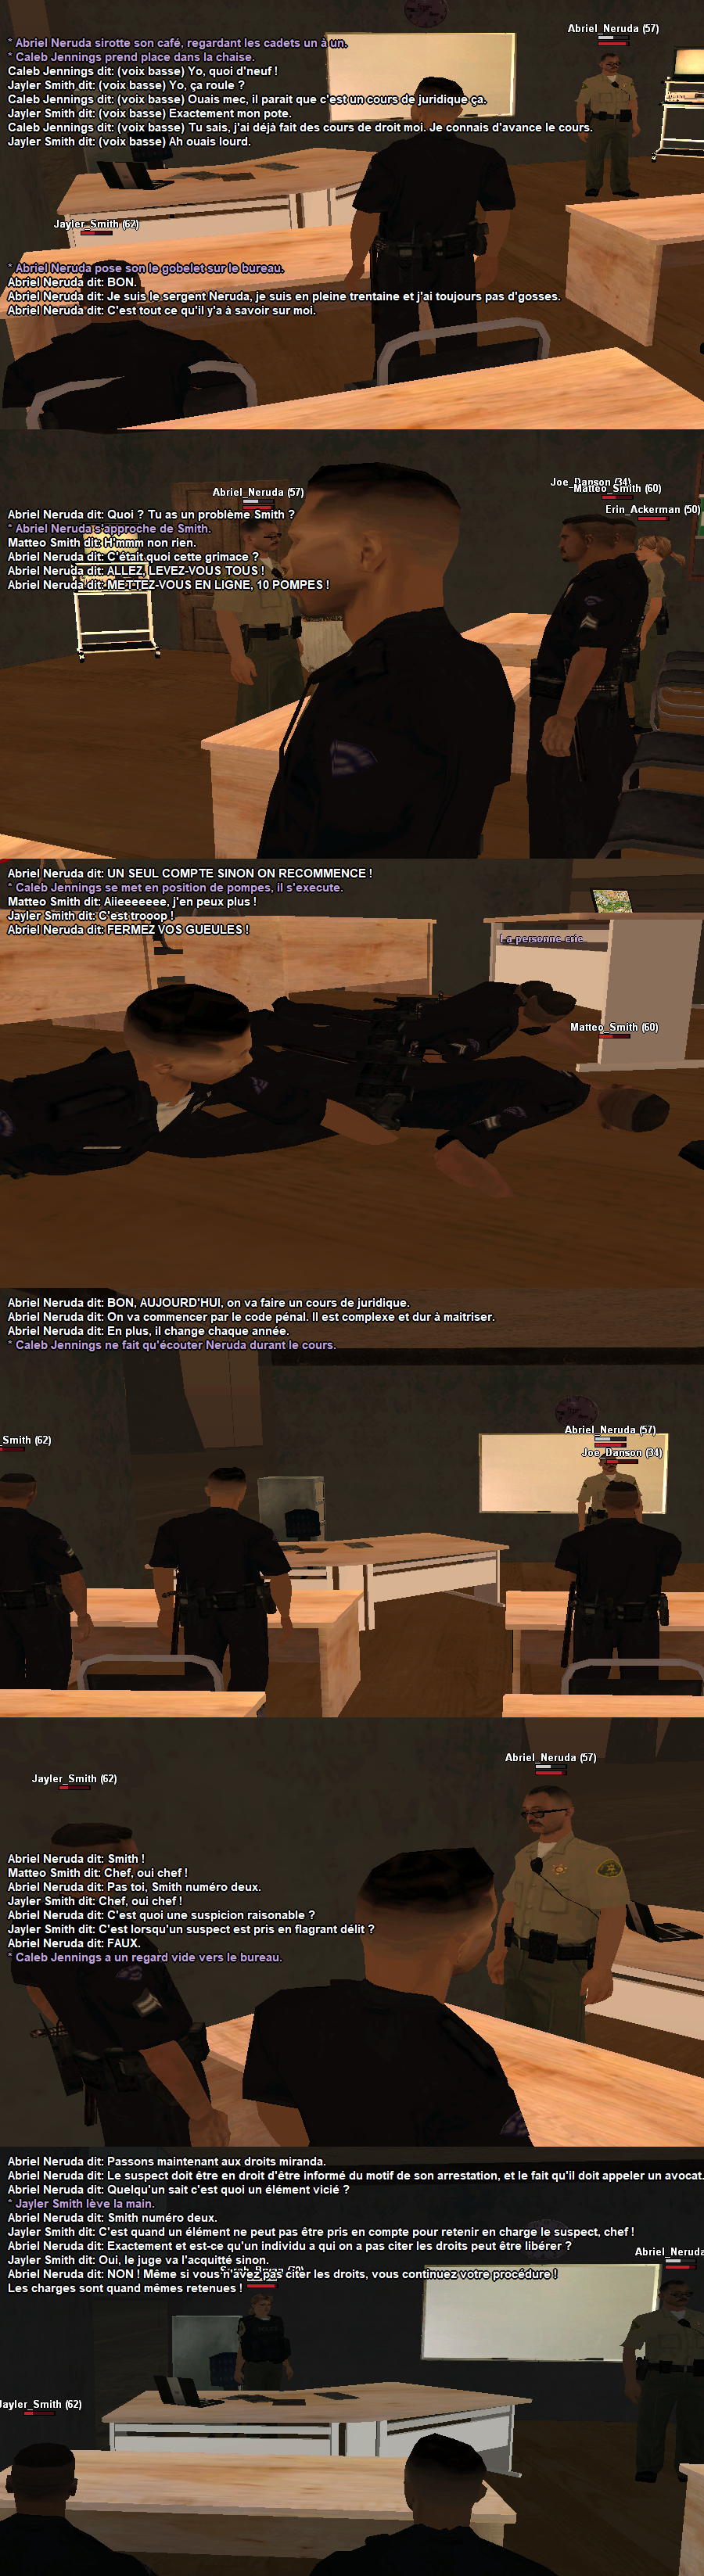 Los Santos Sheriff's Department - A tradition of service (8) - Page 9 1532051200-a